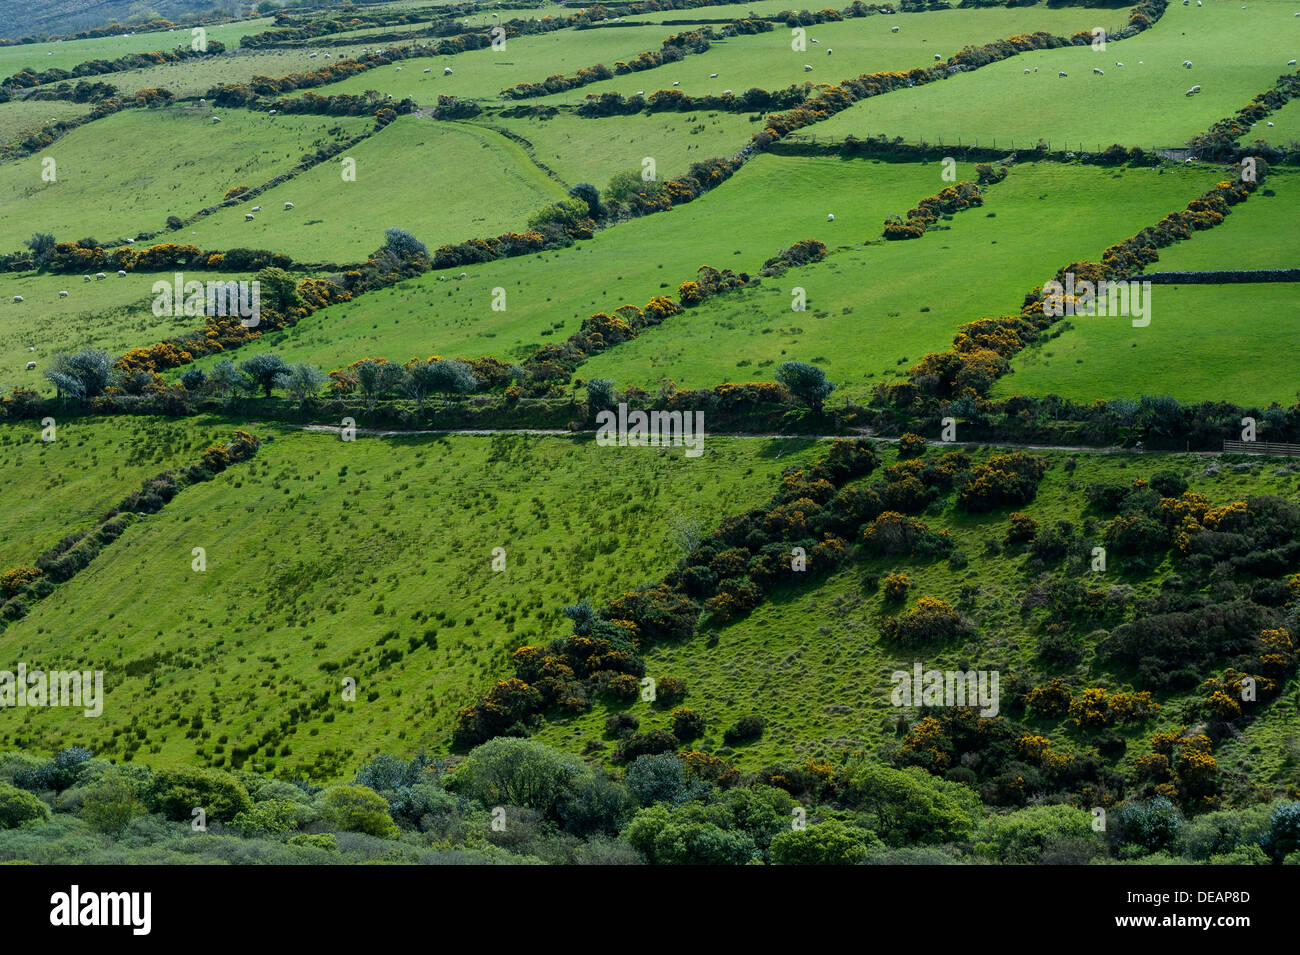 Sheep runs in lush green, encircled by hedgerows, Republic of Ireland, Europe - Stock Image